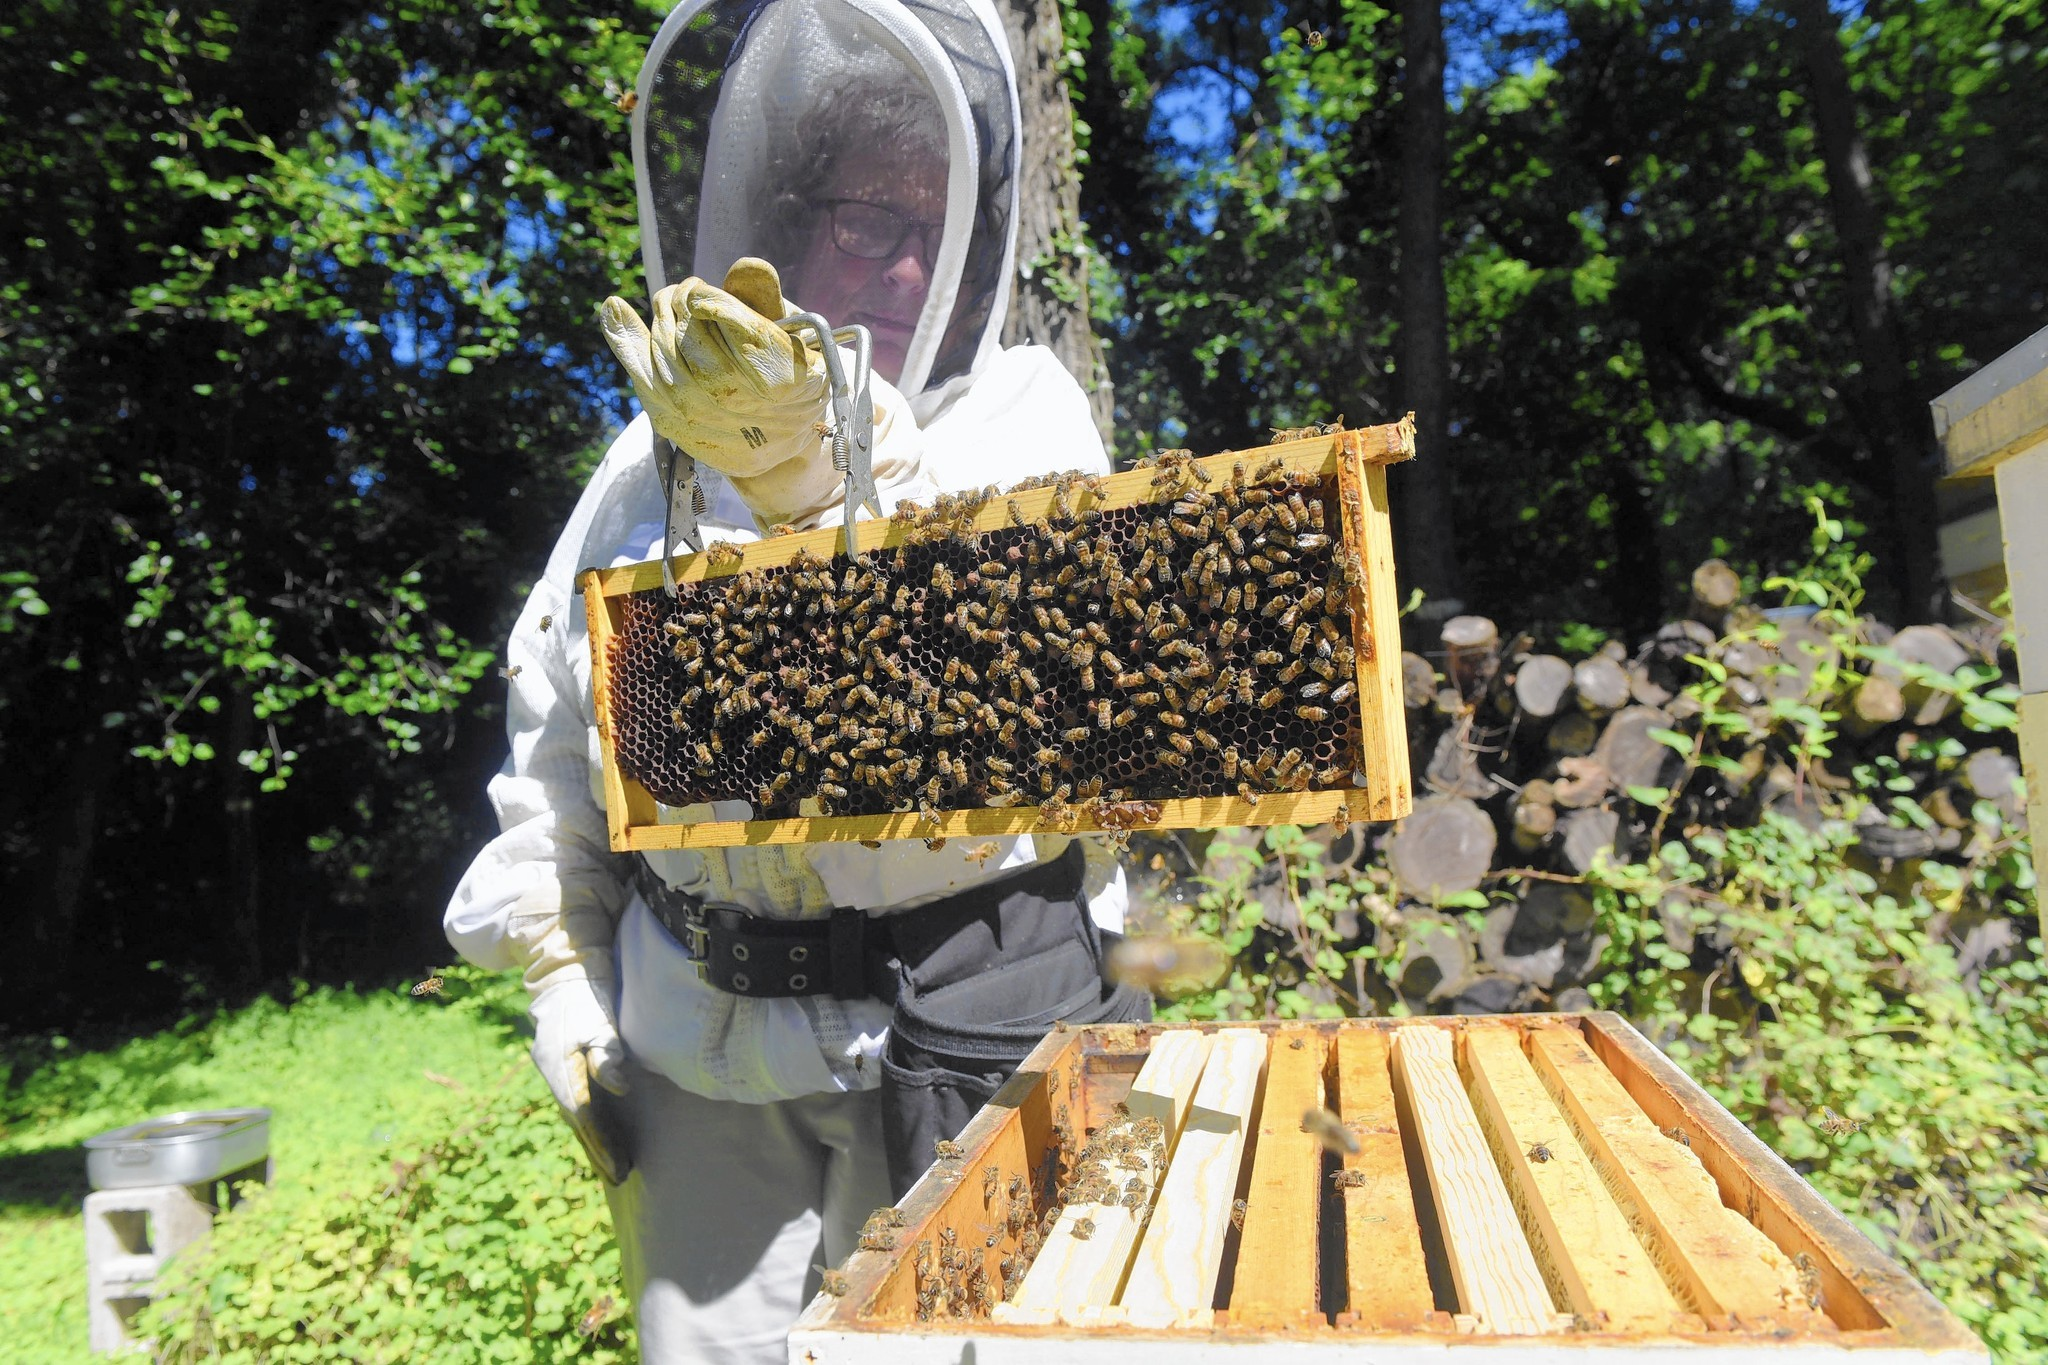 growing number of beekeepers hives abuzz in baltimore baltimore sun